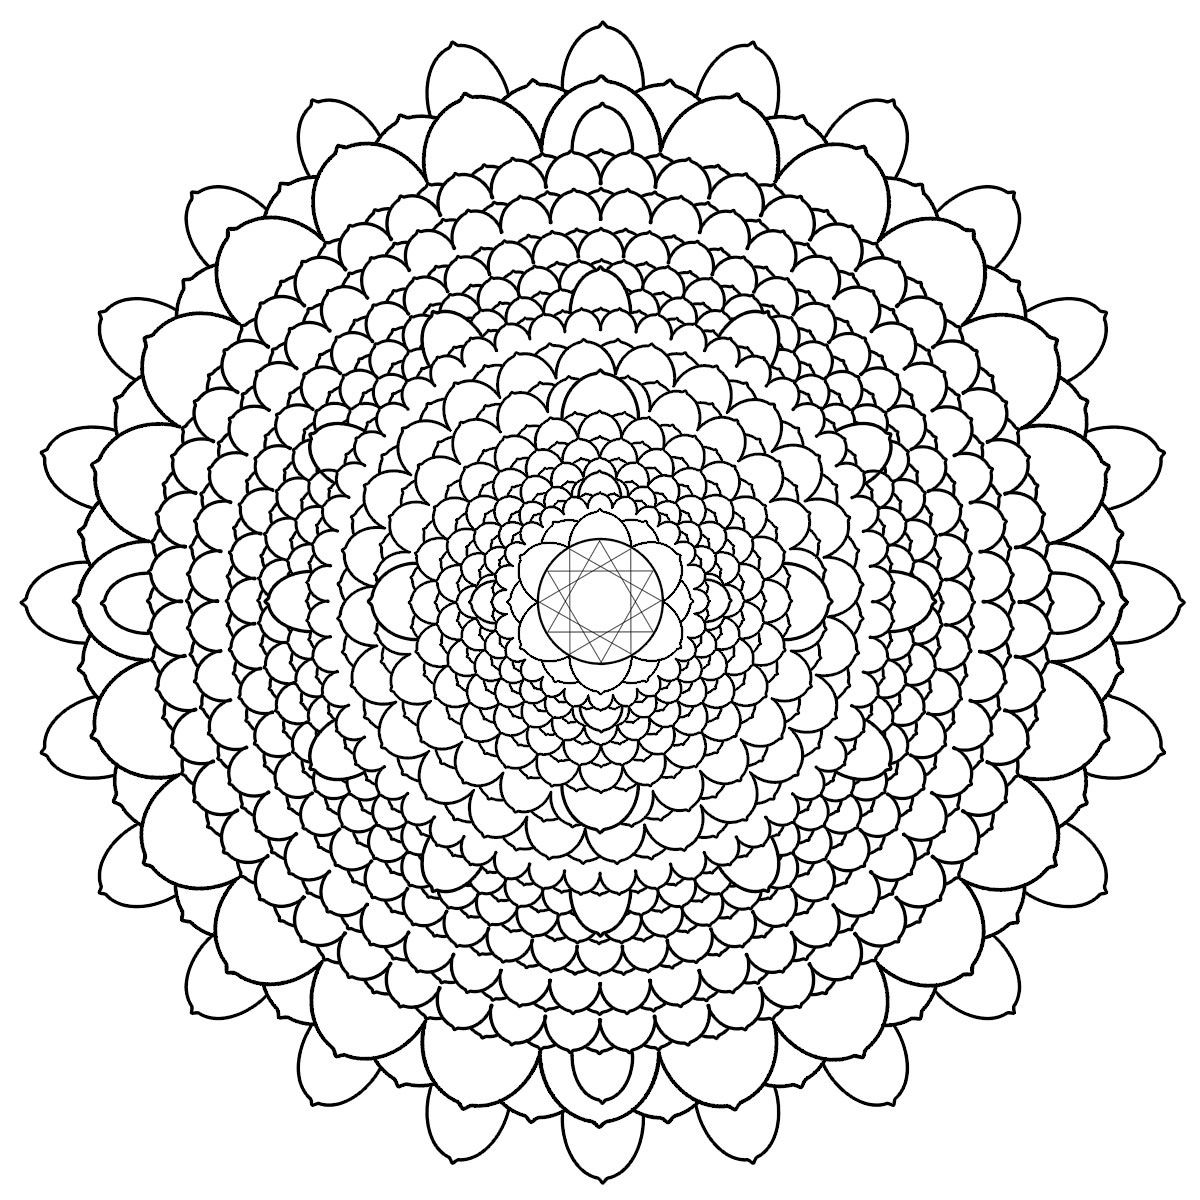 Colouring in pages mandala - Free Printable Mandalas For Adults Difficult Mandala Coloring Pages